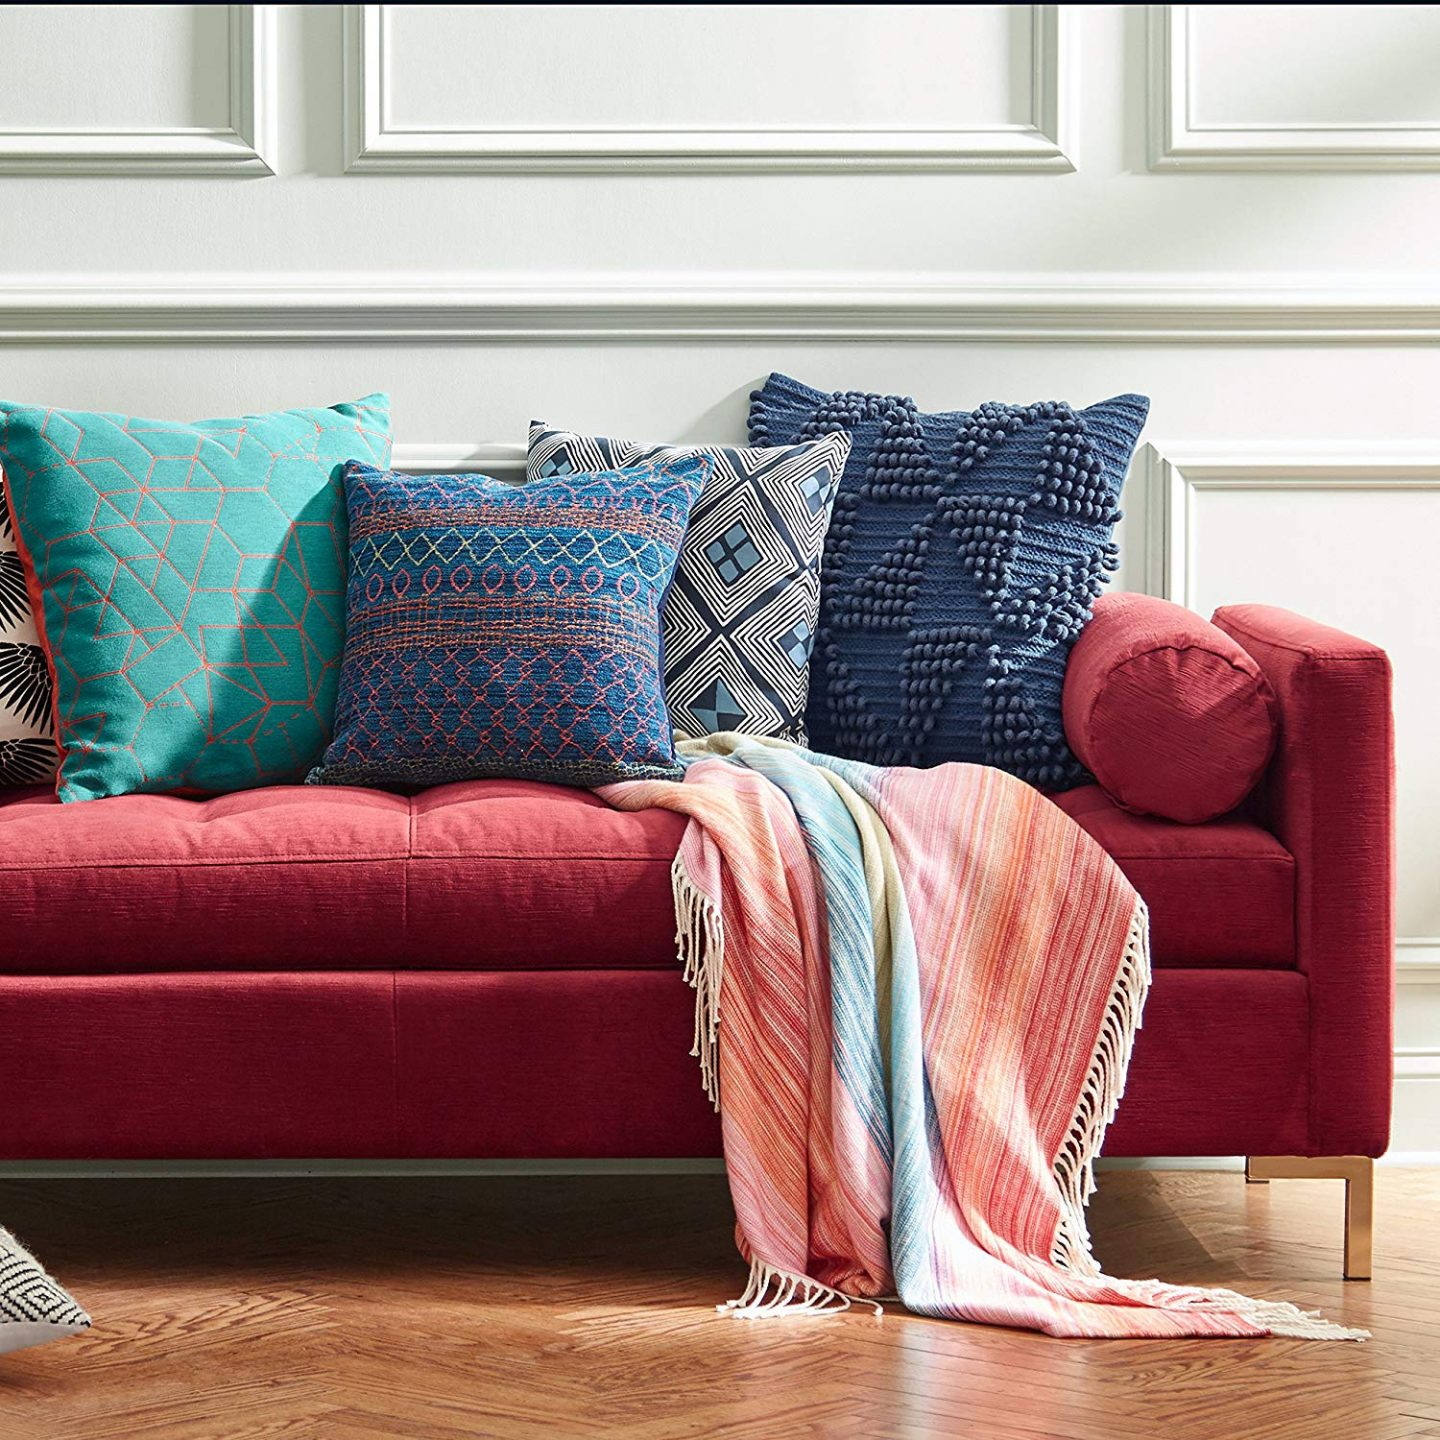 Add some color with accent pillows and 8 Other Ways To Update Your Home On A Budget. I was looking for unique and fun ways to spruce up my home, either with accents, plants, or wallpaper. these are some budget-friendly ways to make a room come to life. #homedecor #home #homeinspo